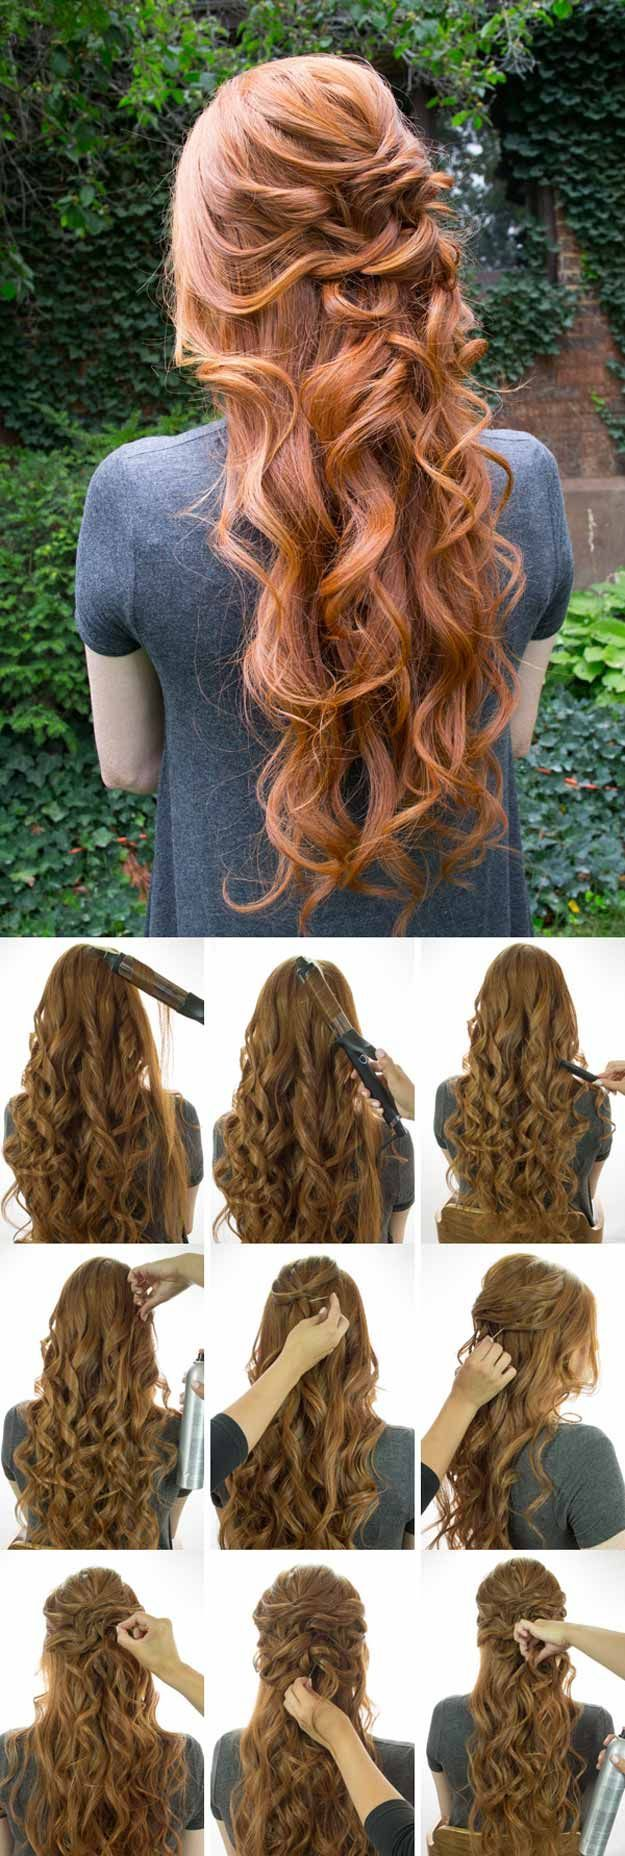 Wedding Hairstyles For Long Hair Loose Curly Half Up